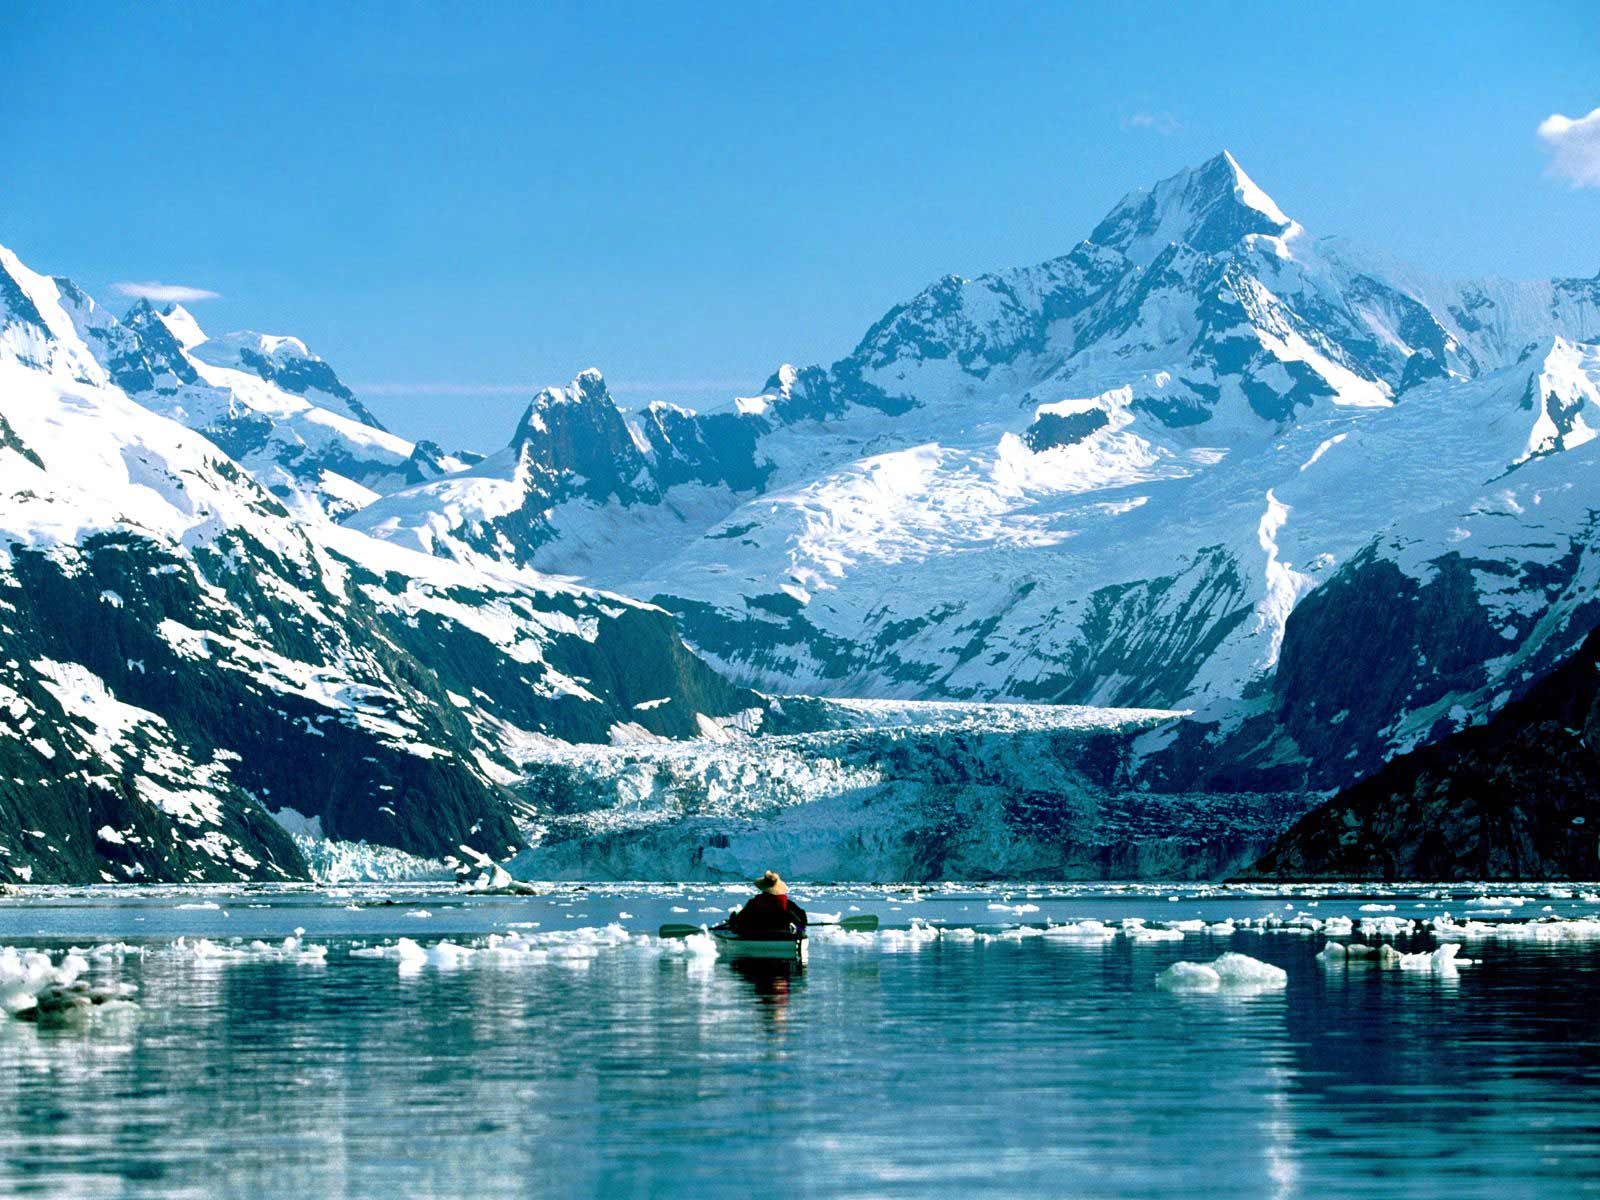 http://2.bp.blogspot.com/-UclA7UaPPEE/TVjog4xcDiI/AAAAAAAAAFA/oIhedRQ_tDM/s1600/Nature_Mountains_Mountain_River_013727_.jpg